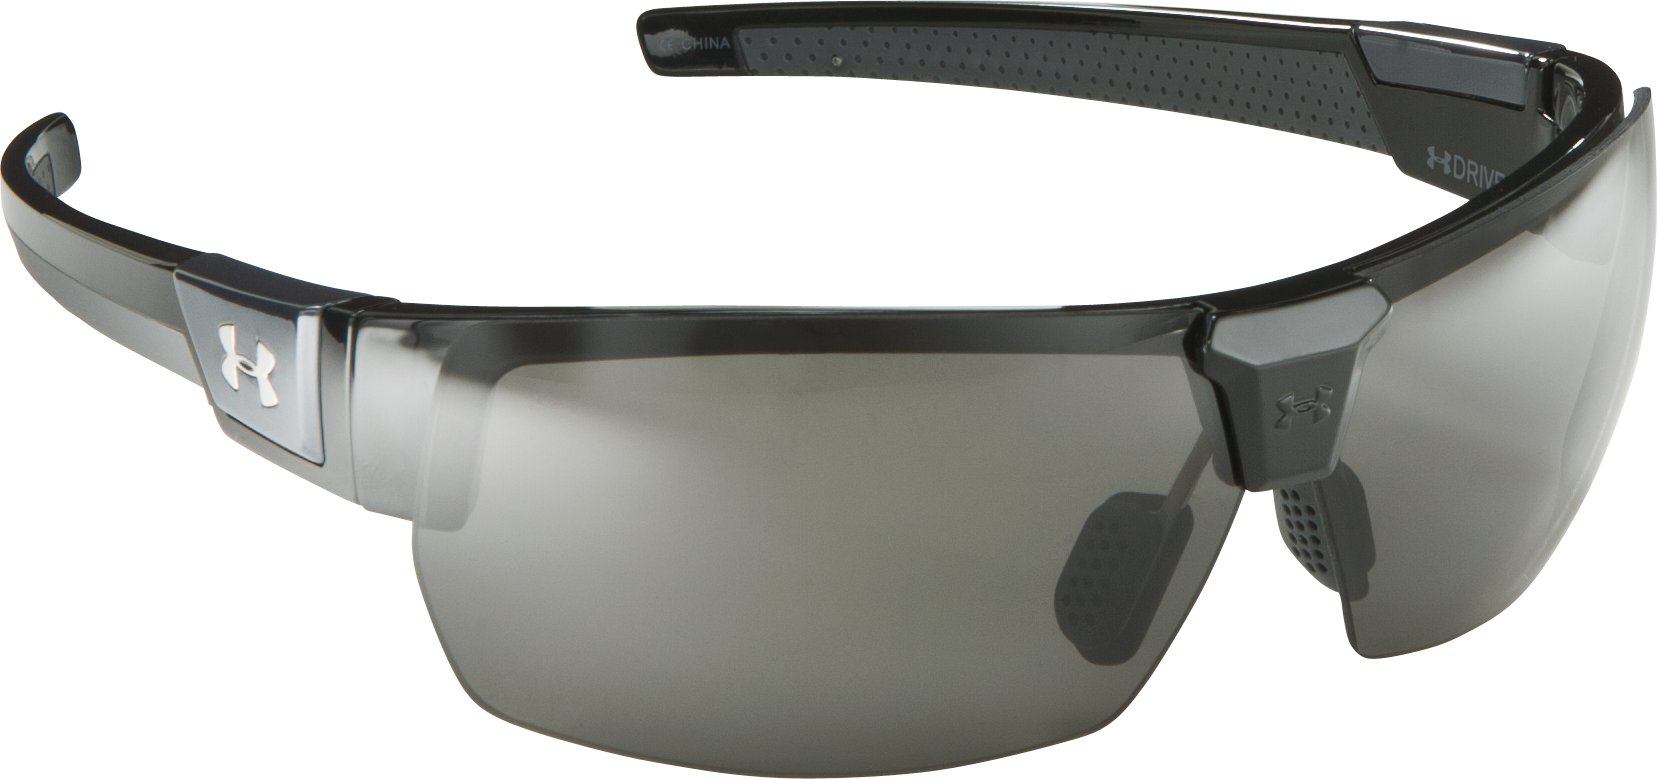 UA Drive Sunglasses, Shiny Black